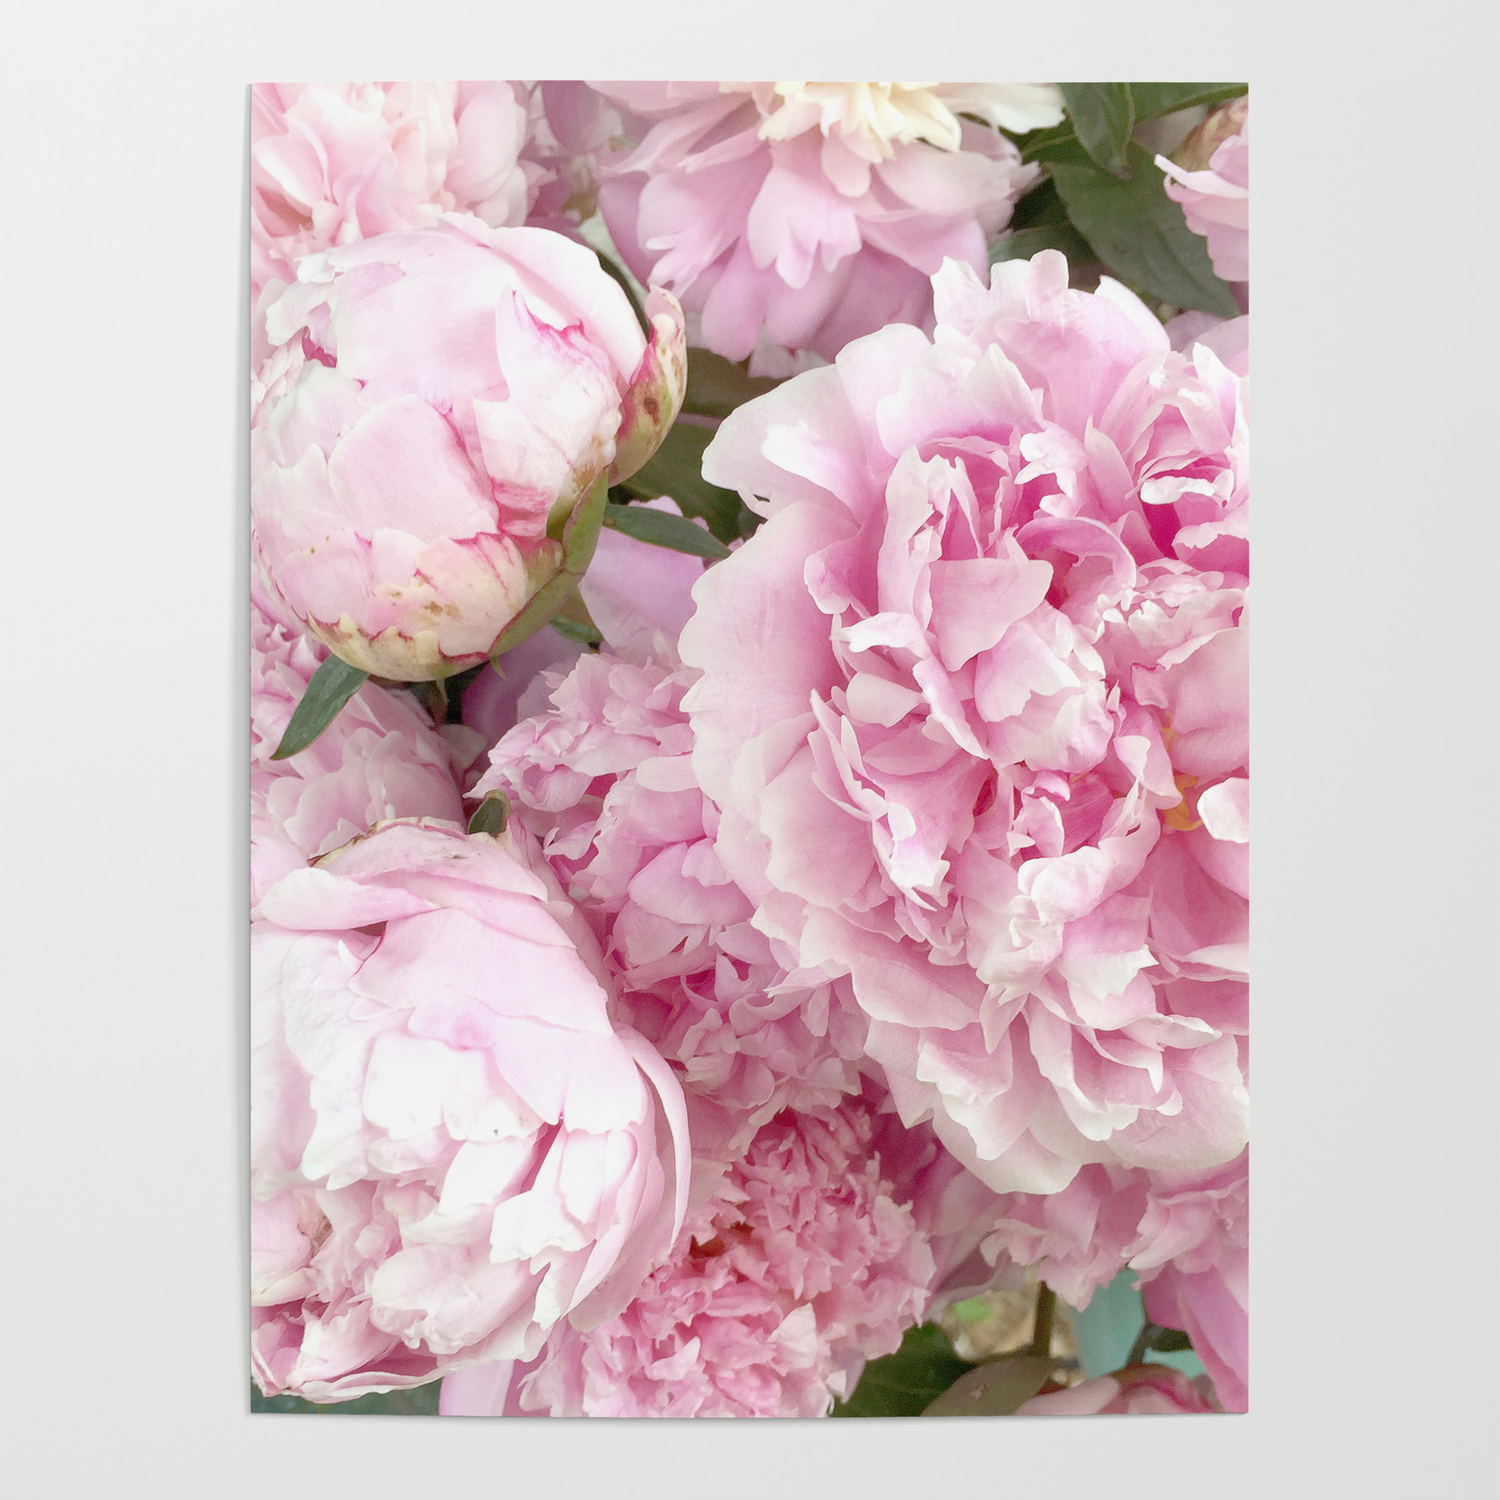 Pink Shabby Chic Peonies Garden Peony Flowers Wall Prints Home